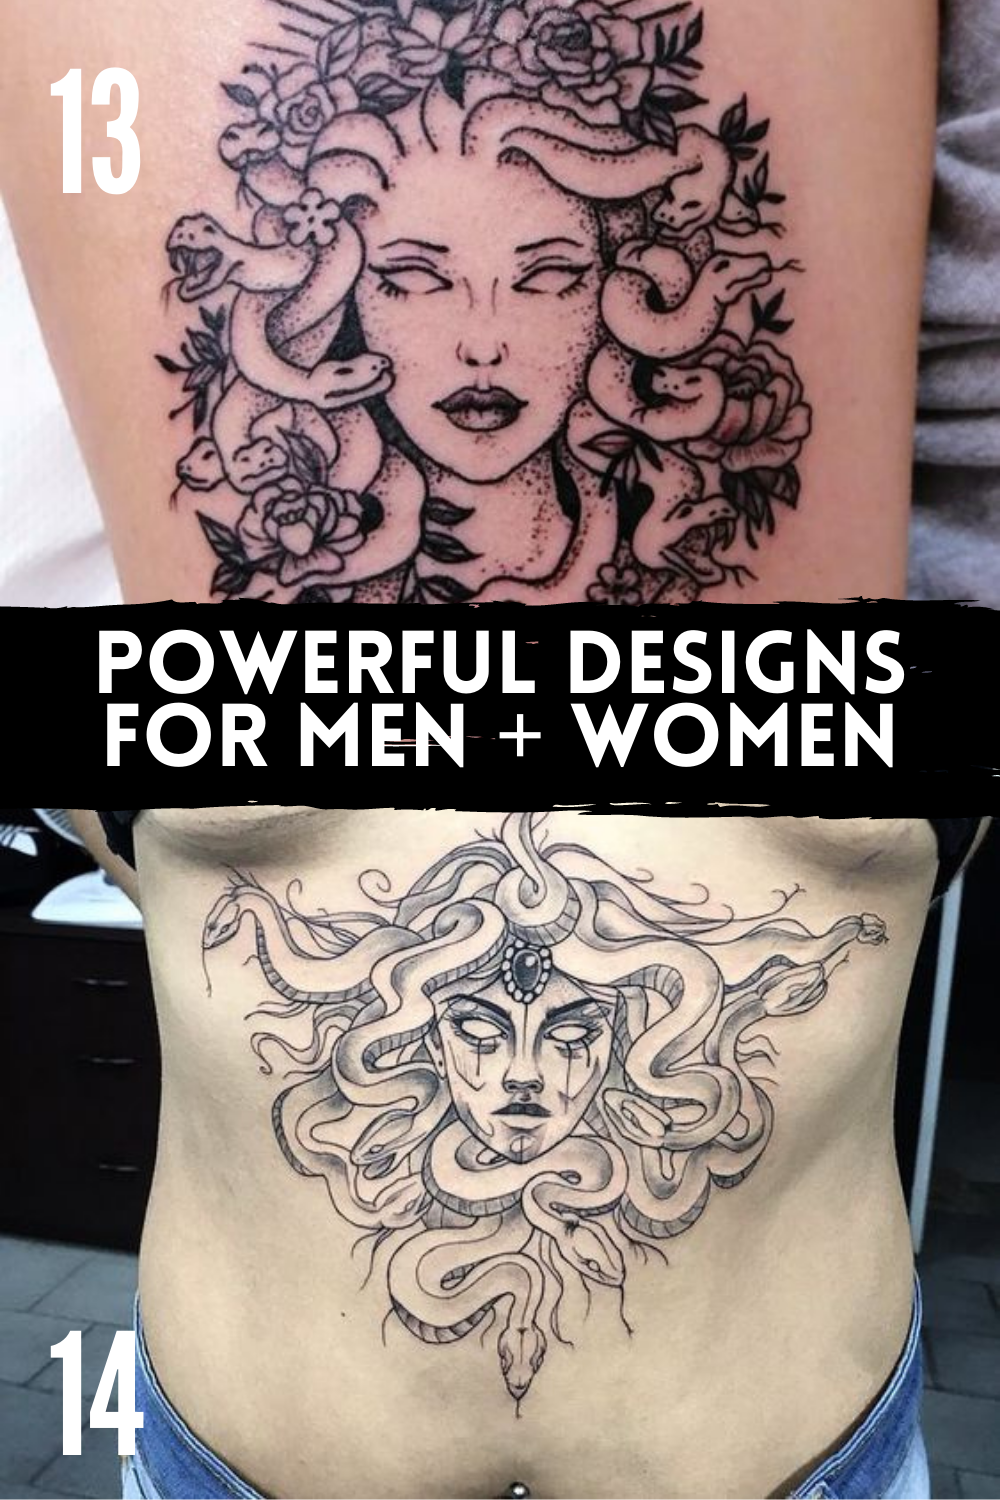 Powerful Designs for Men and Women